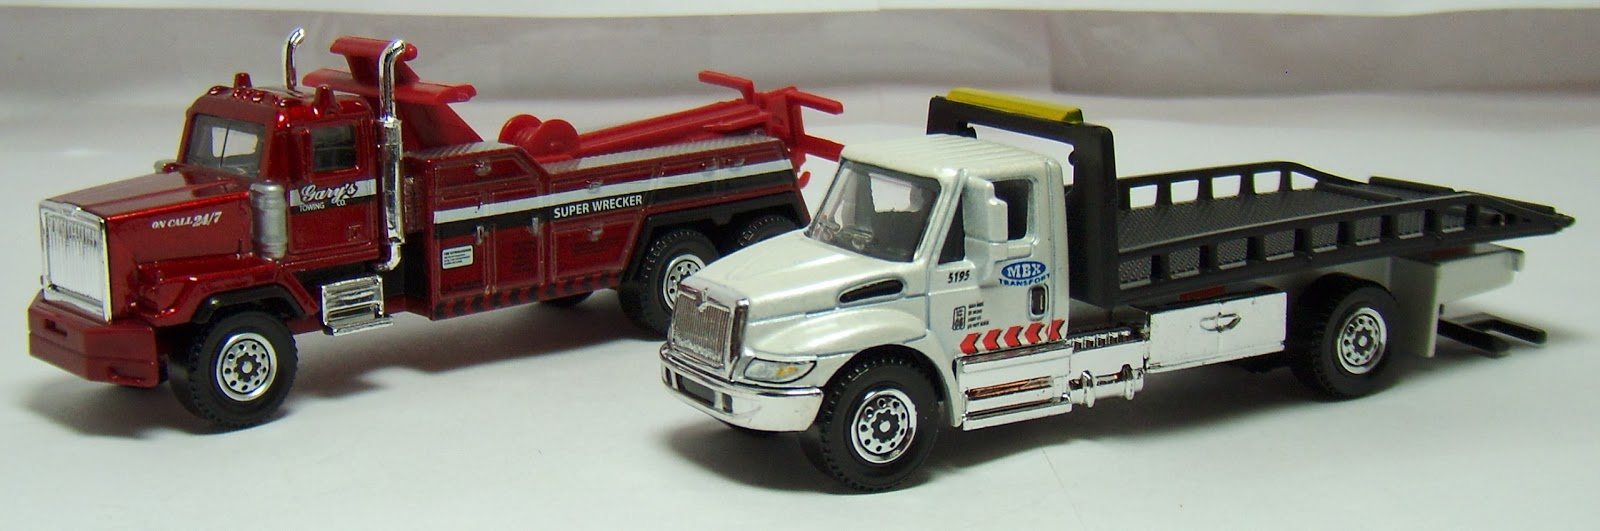 Matchbox Real Rigs Series Working